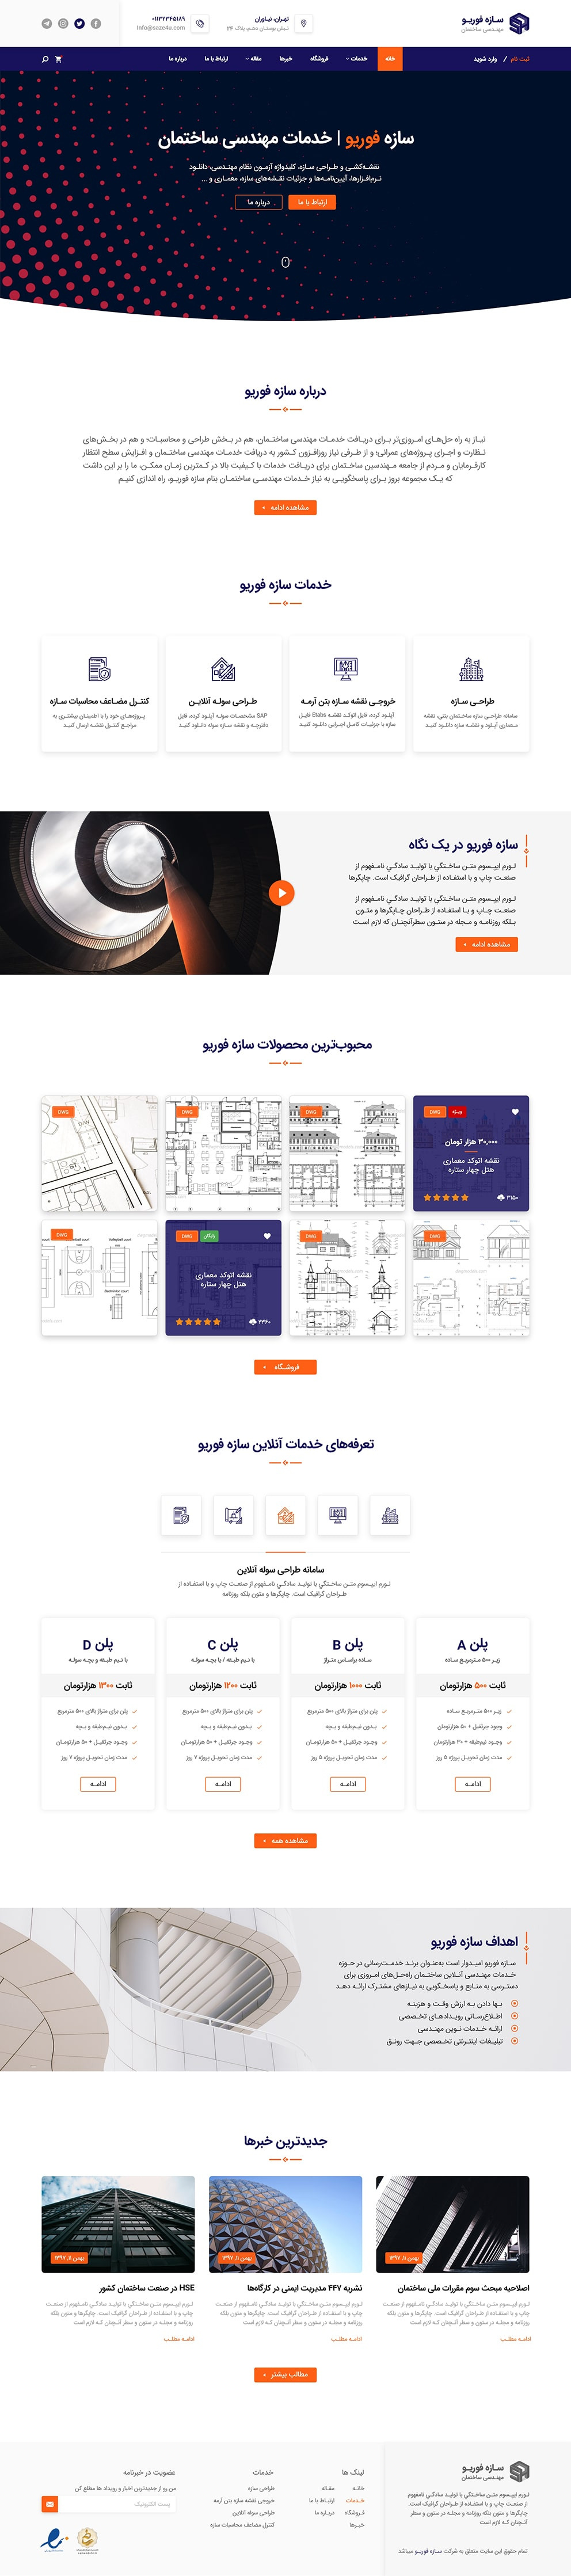 Saze For You user interface, design and branding